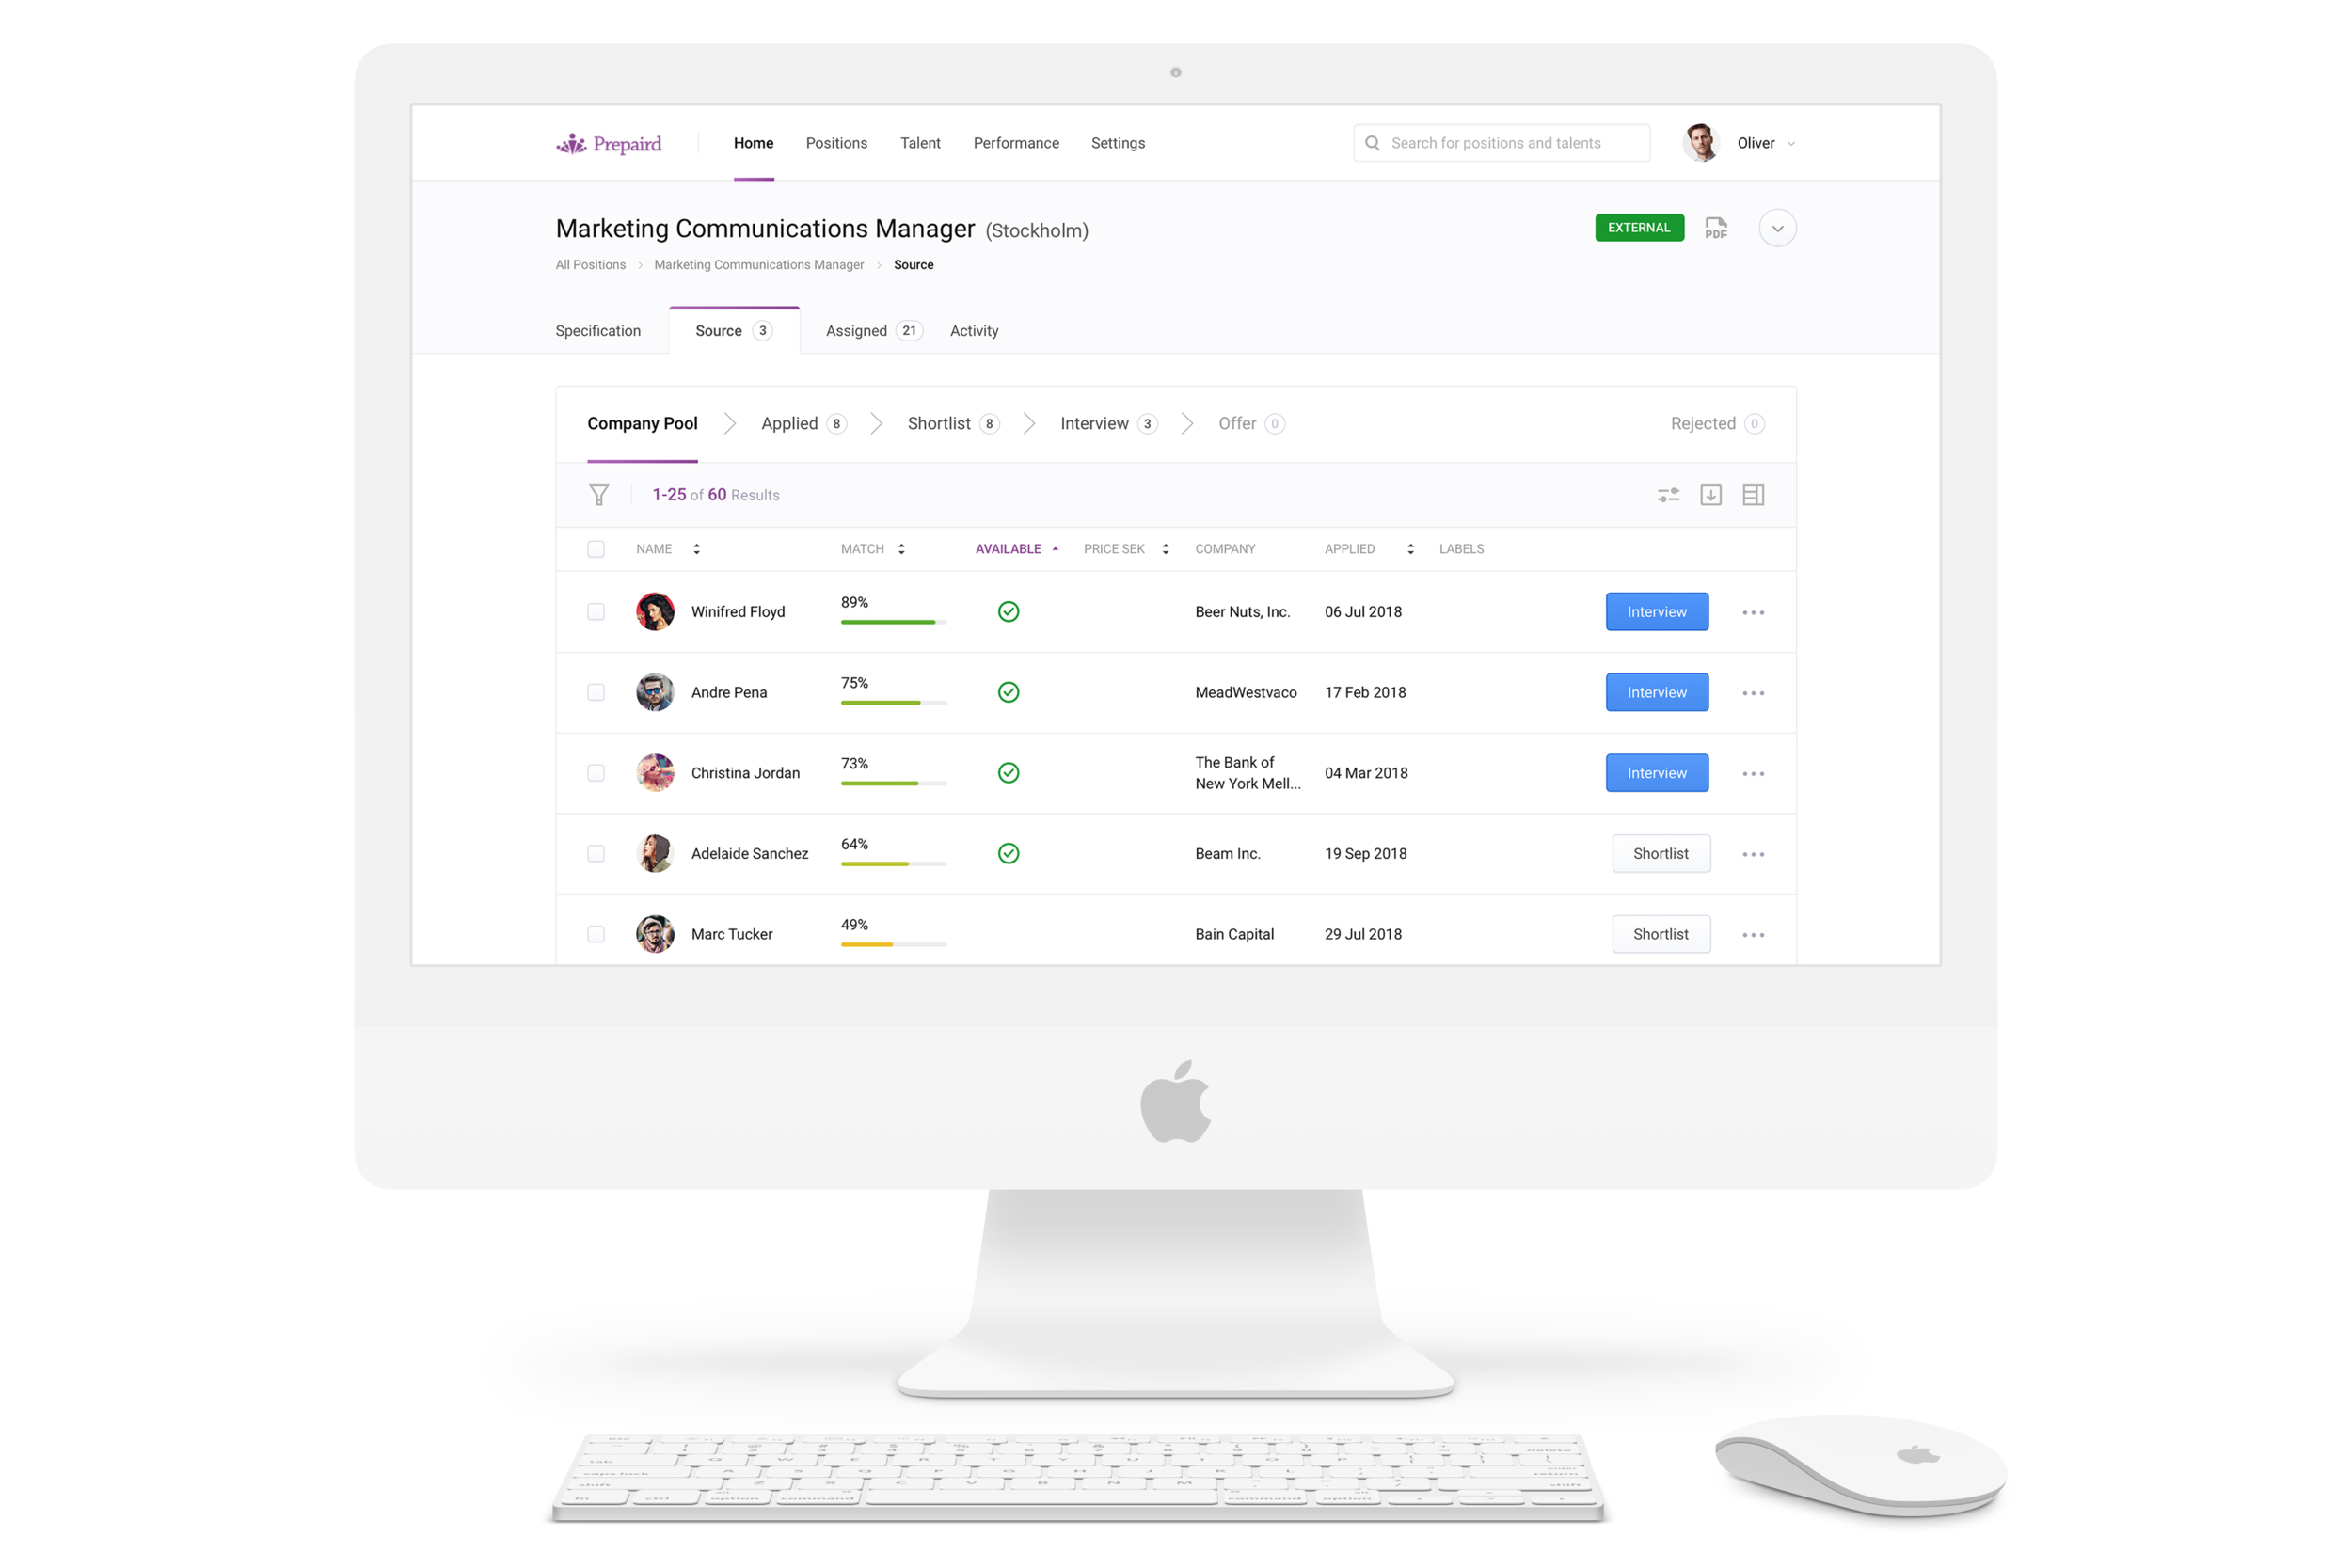 Make great people Decisions - With a minimal footprint and fully comprehensive digitized profiles, make safer recruitments by basing your decisions on an objective and holistic approach.